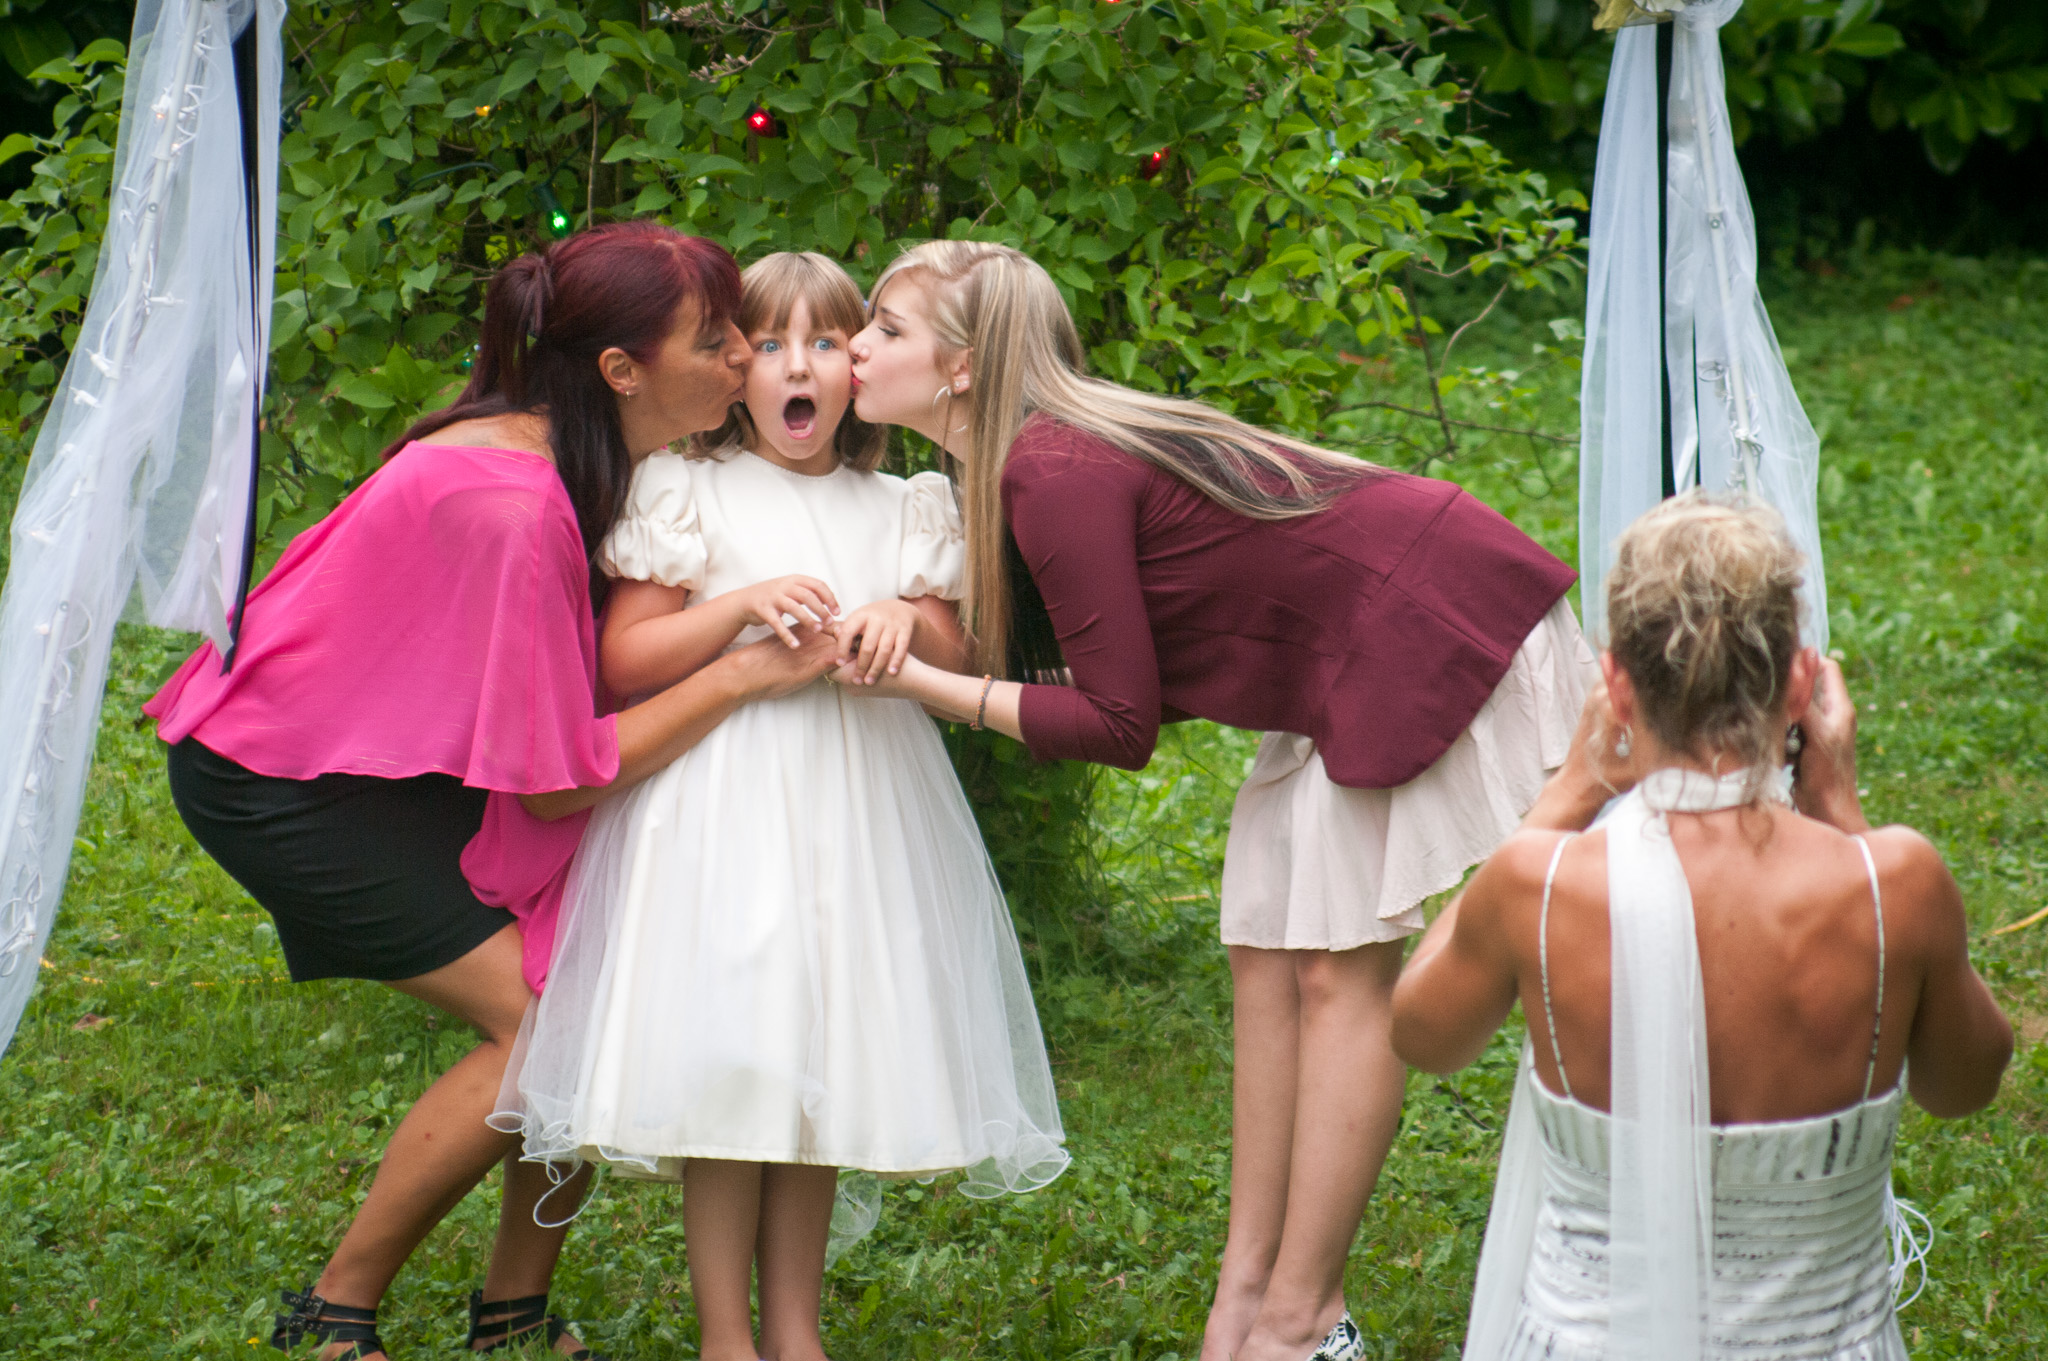 Another flower girl trying to steal the show :)